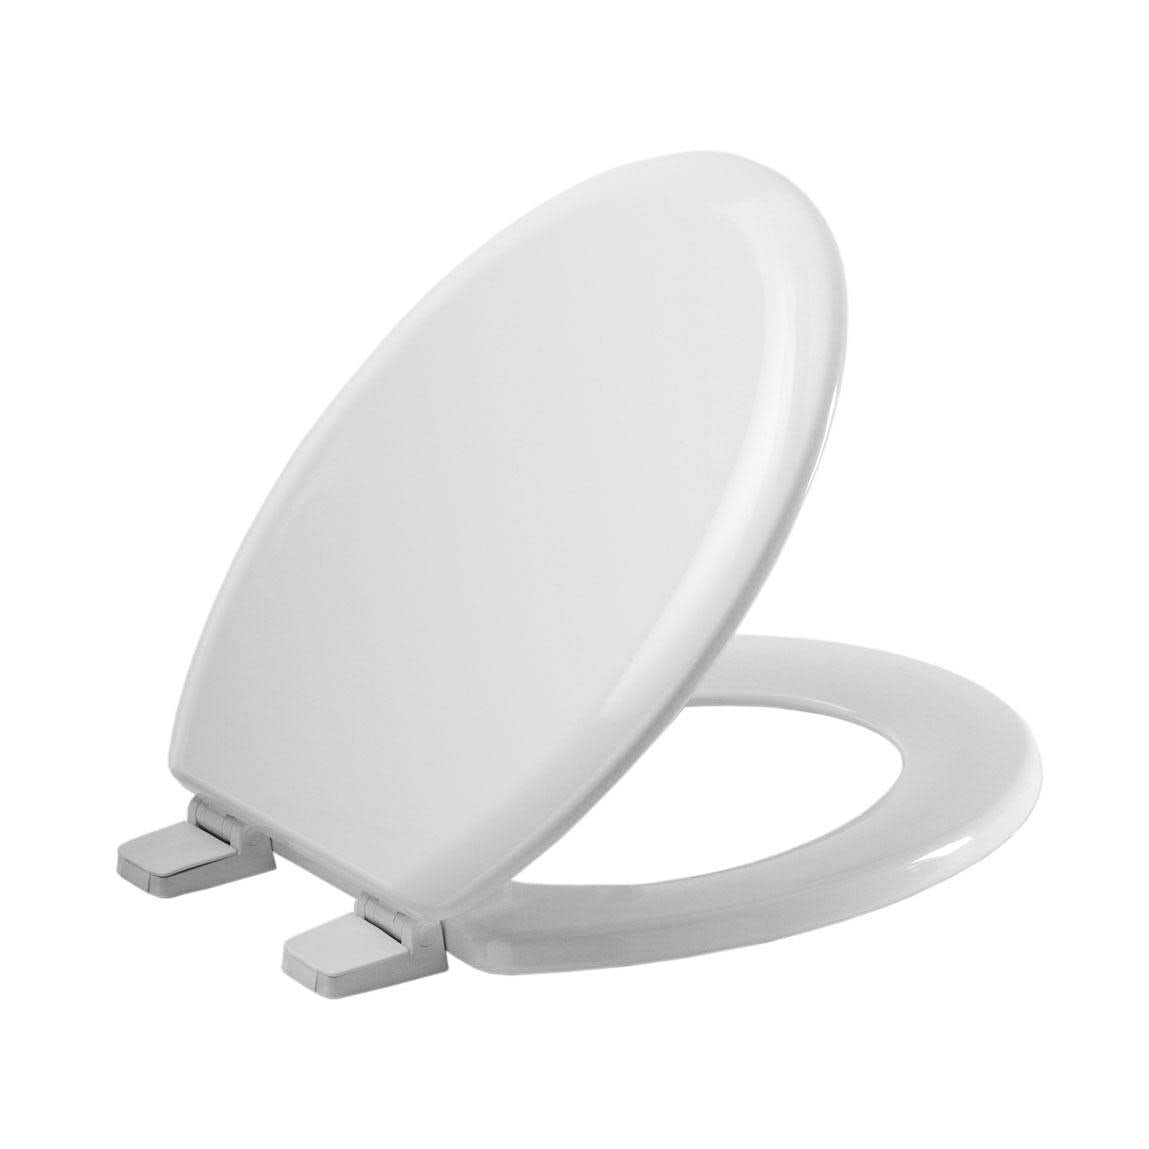 wooden soft close toilet seat white. Ivory Wooden Soft Close Seat For Richmond Toilets BFI  Burlington Matt White Toilet S45